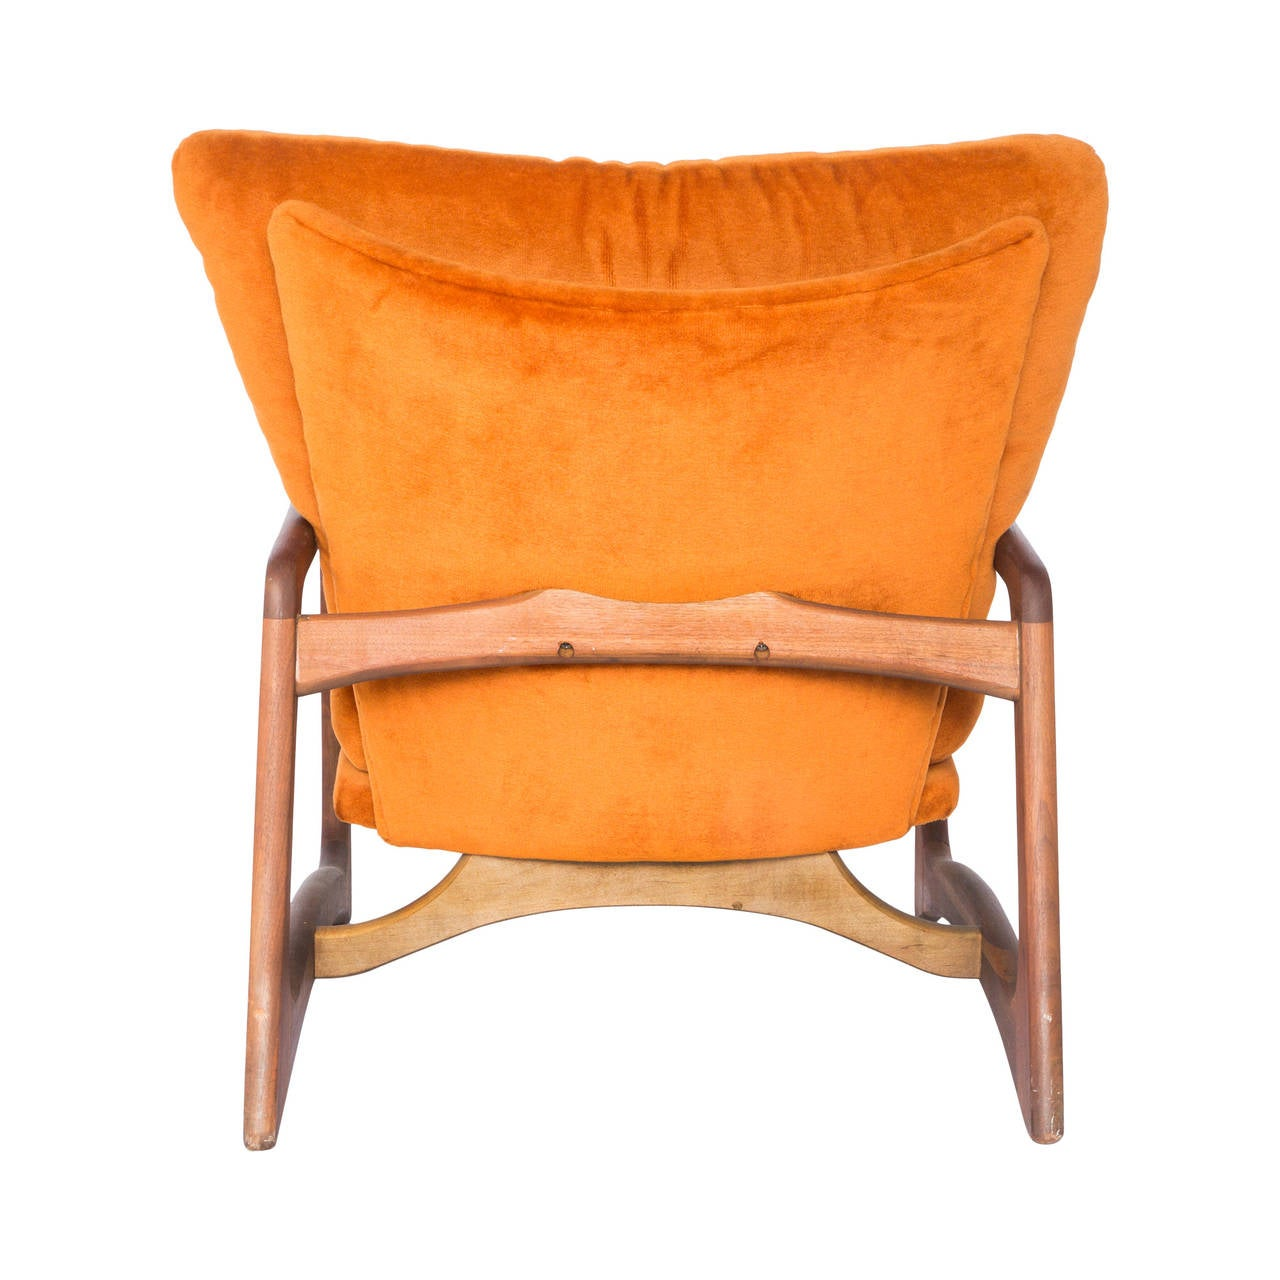 Mid-Century Modern Adrian Pearsall for Craft Associates Sculpted Lounge Chair in Orange Velvet For Sale